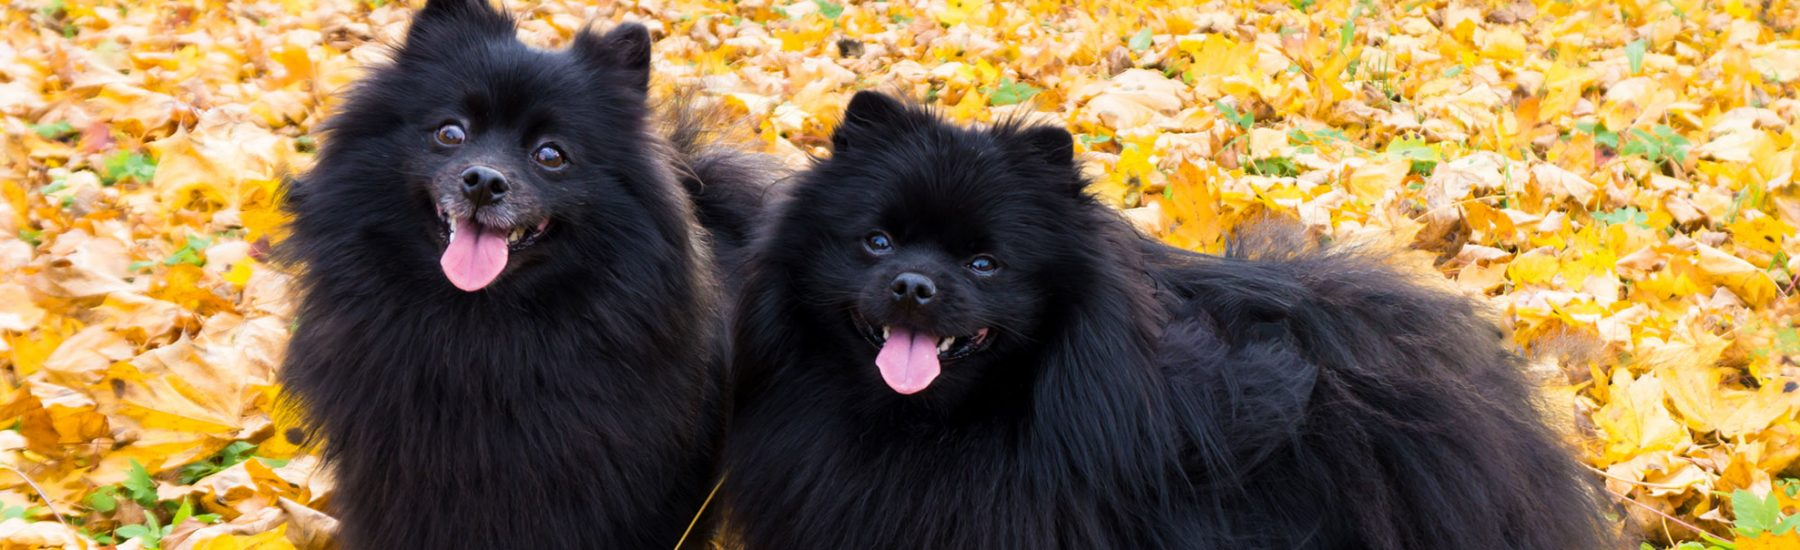 Two dogs outdoors surrounded by fall leaves